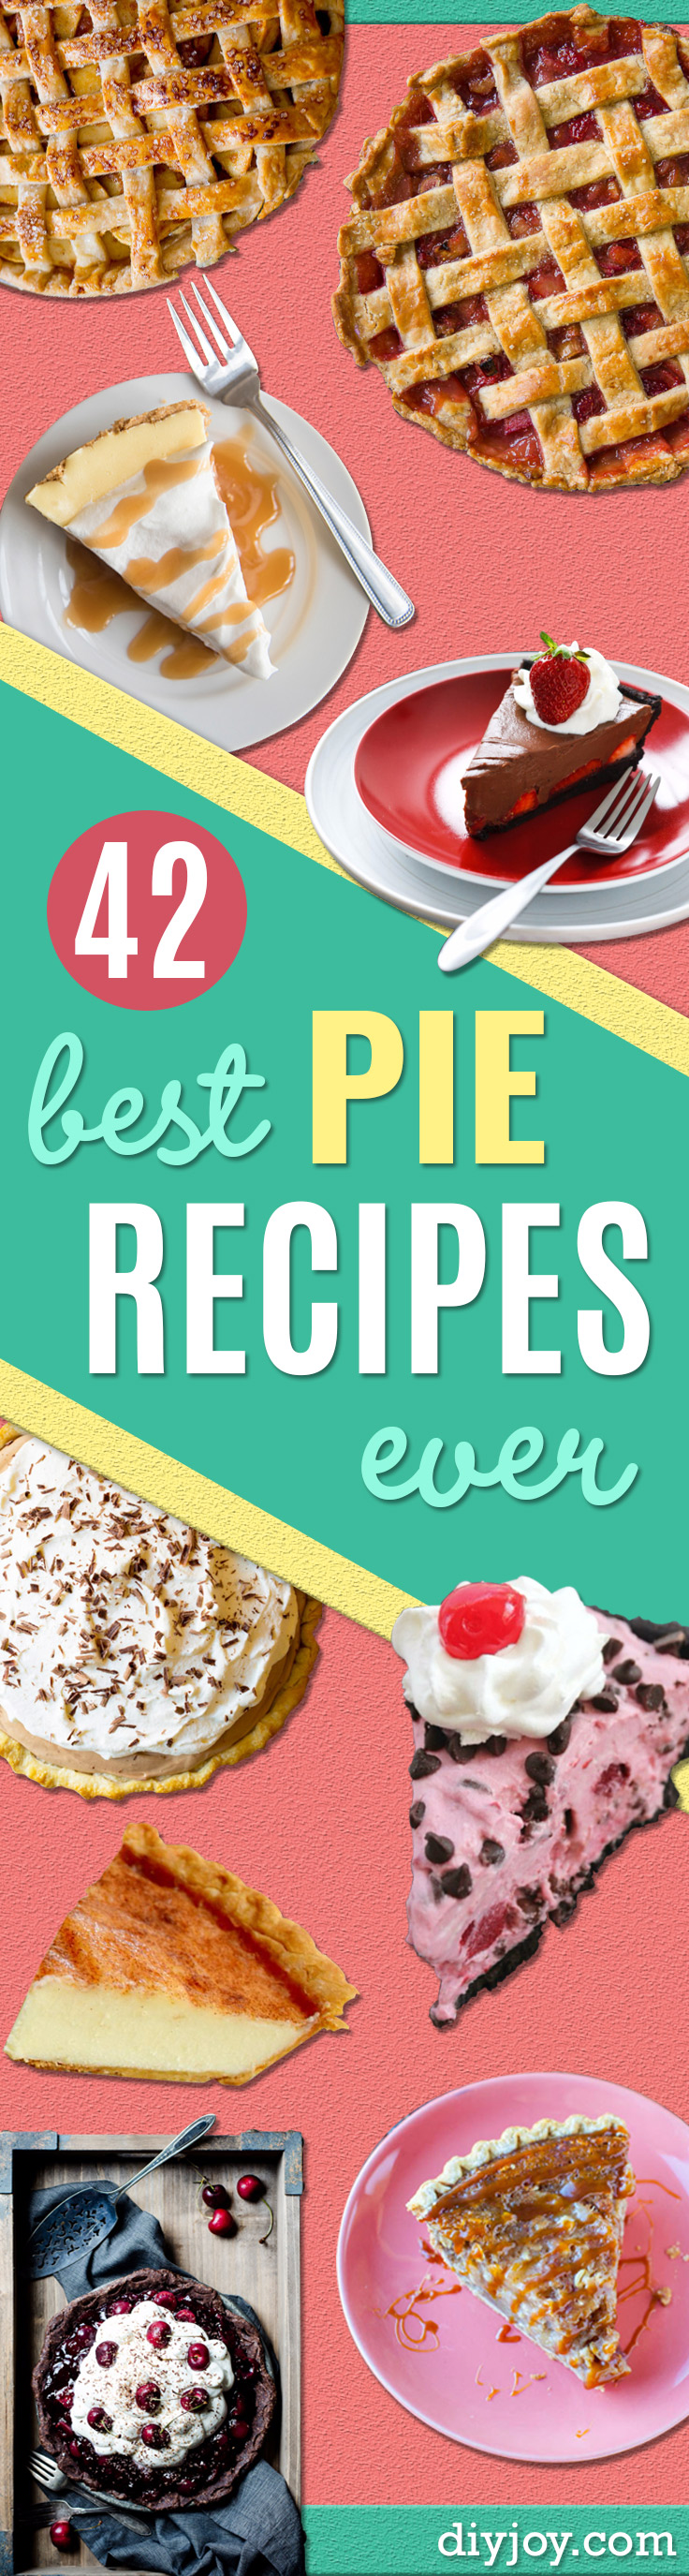 pie recipes easy - best pie recipe ideas From Scratch for Pecan, Apple, Banana, Pumpkin, Fruit, Peach and Chocolate Pies. Yummy Graham Cracker Crusts and Homemade Meringue - Thanksgiving and Christmas Pies and Mason Jar Pie Recipes